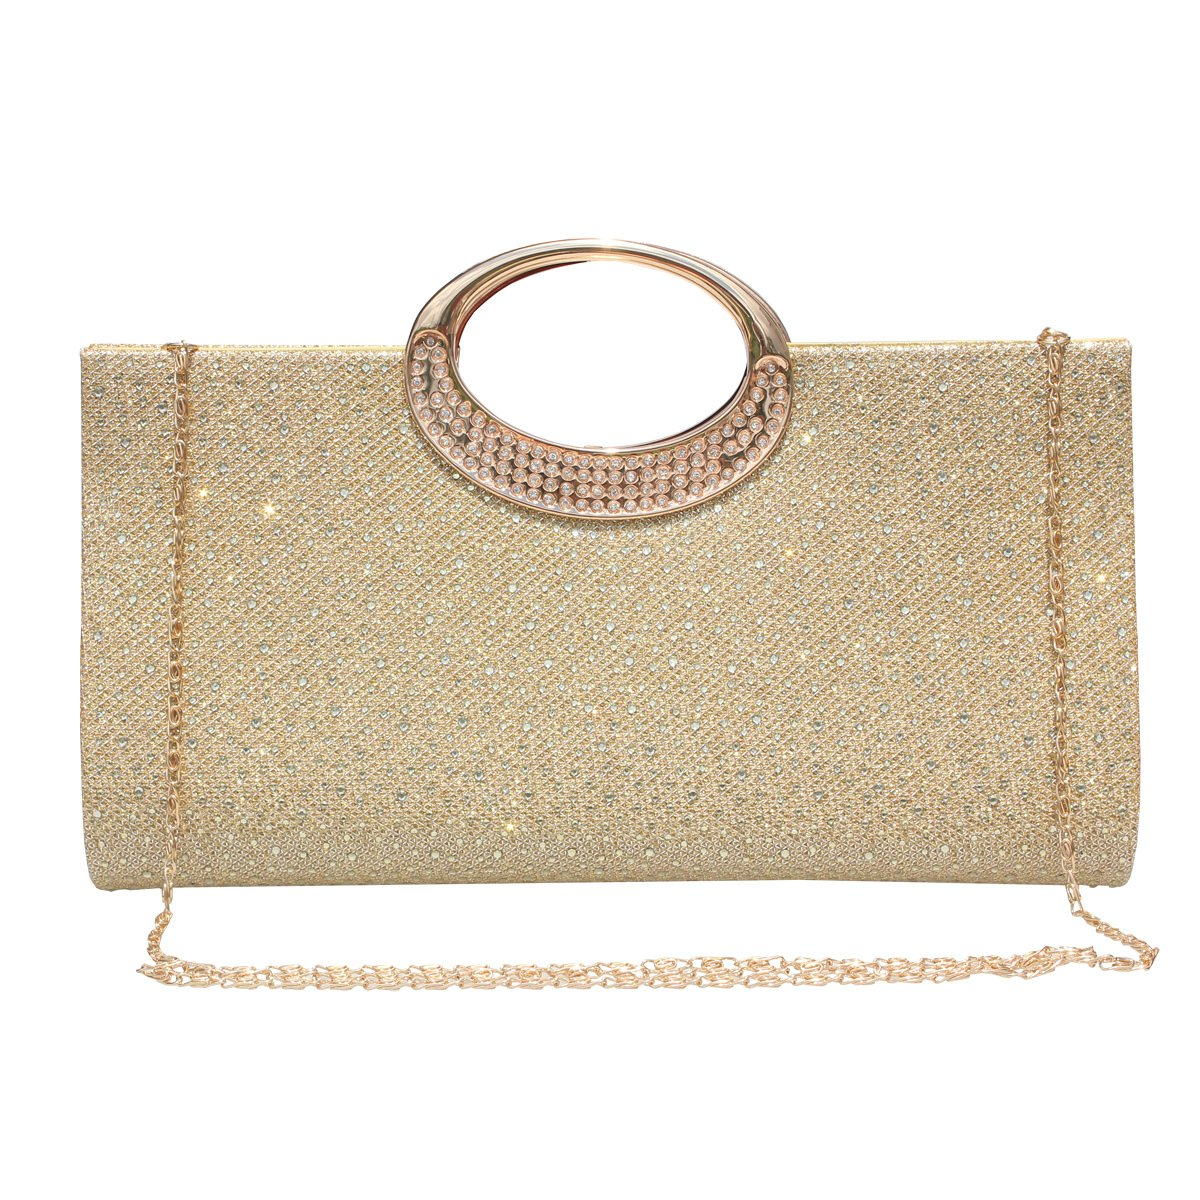 Women Rhinestone Frosted Clutch Bag Handbag Evening Party Wedding Purse.(Gold) by GESU